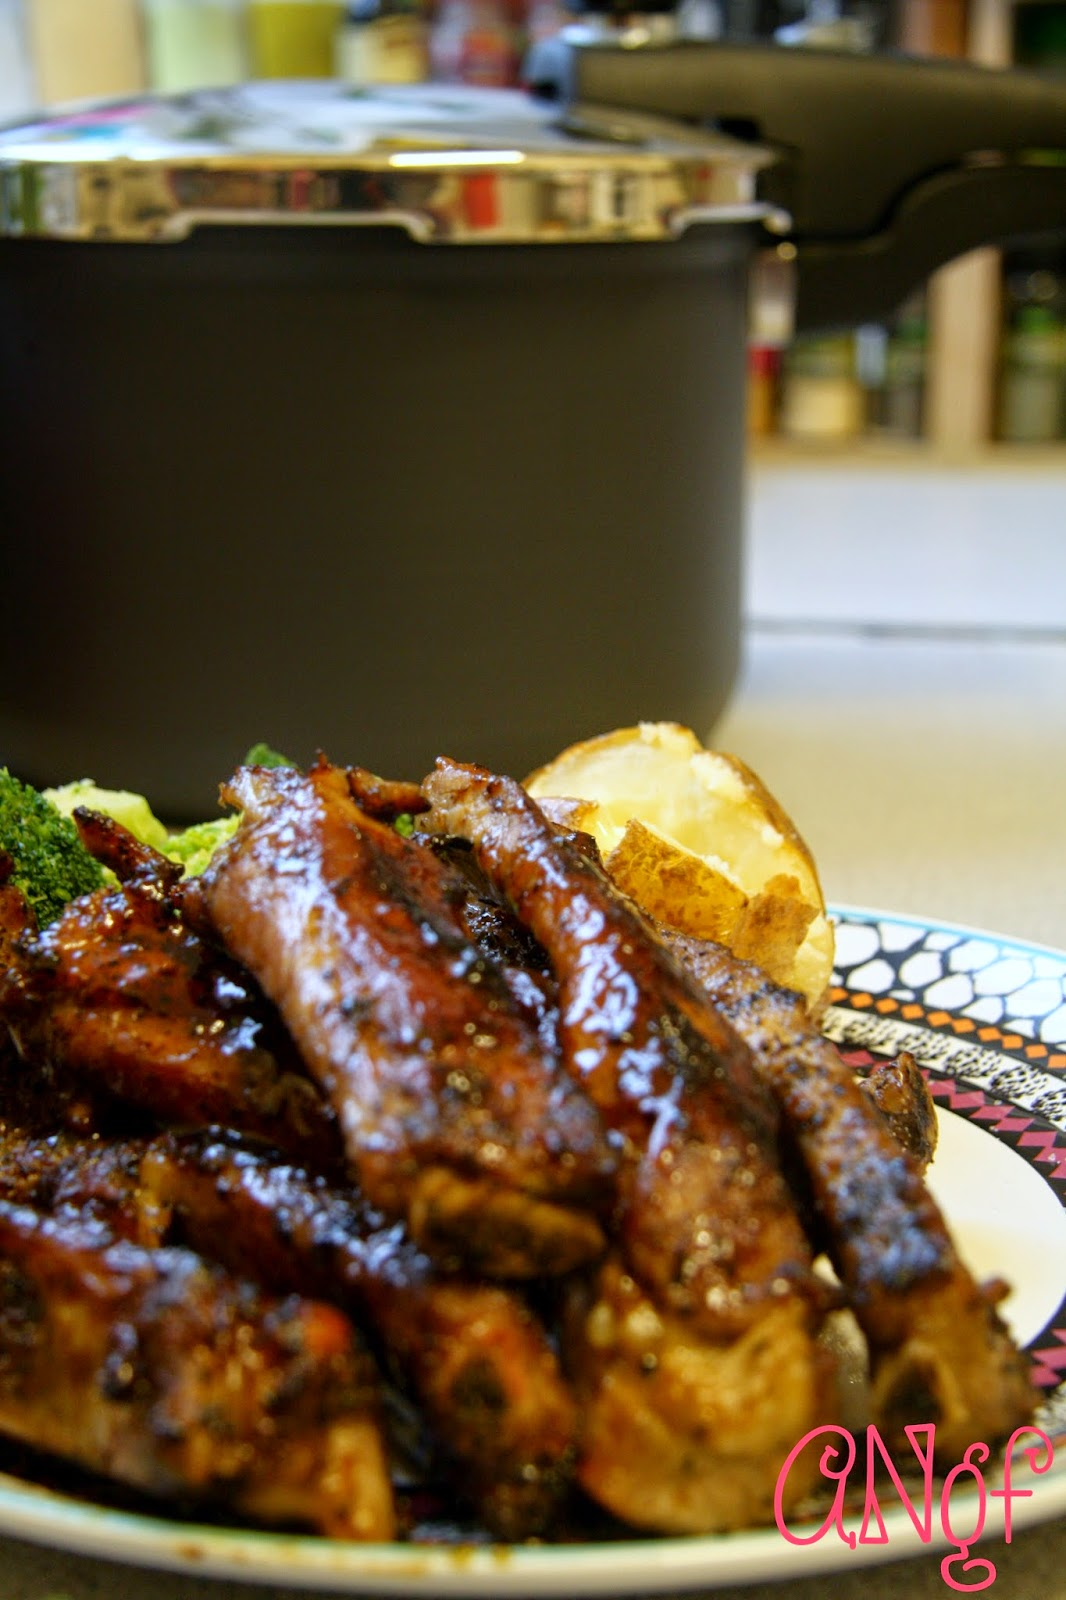 Plate of Pressure Cooker Barbecue Ribs from Anyonita-nibbles.co.uk